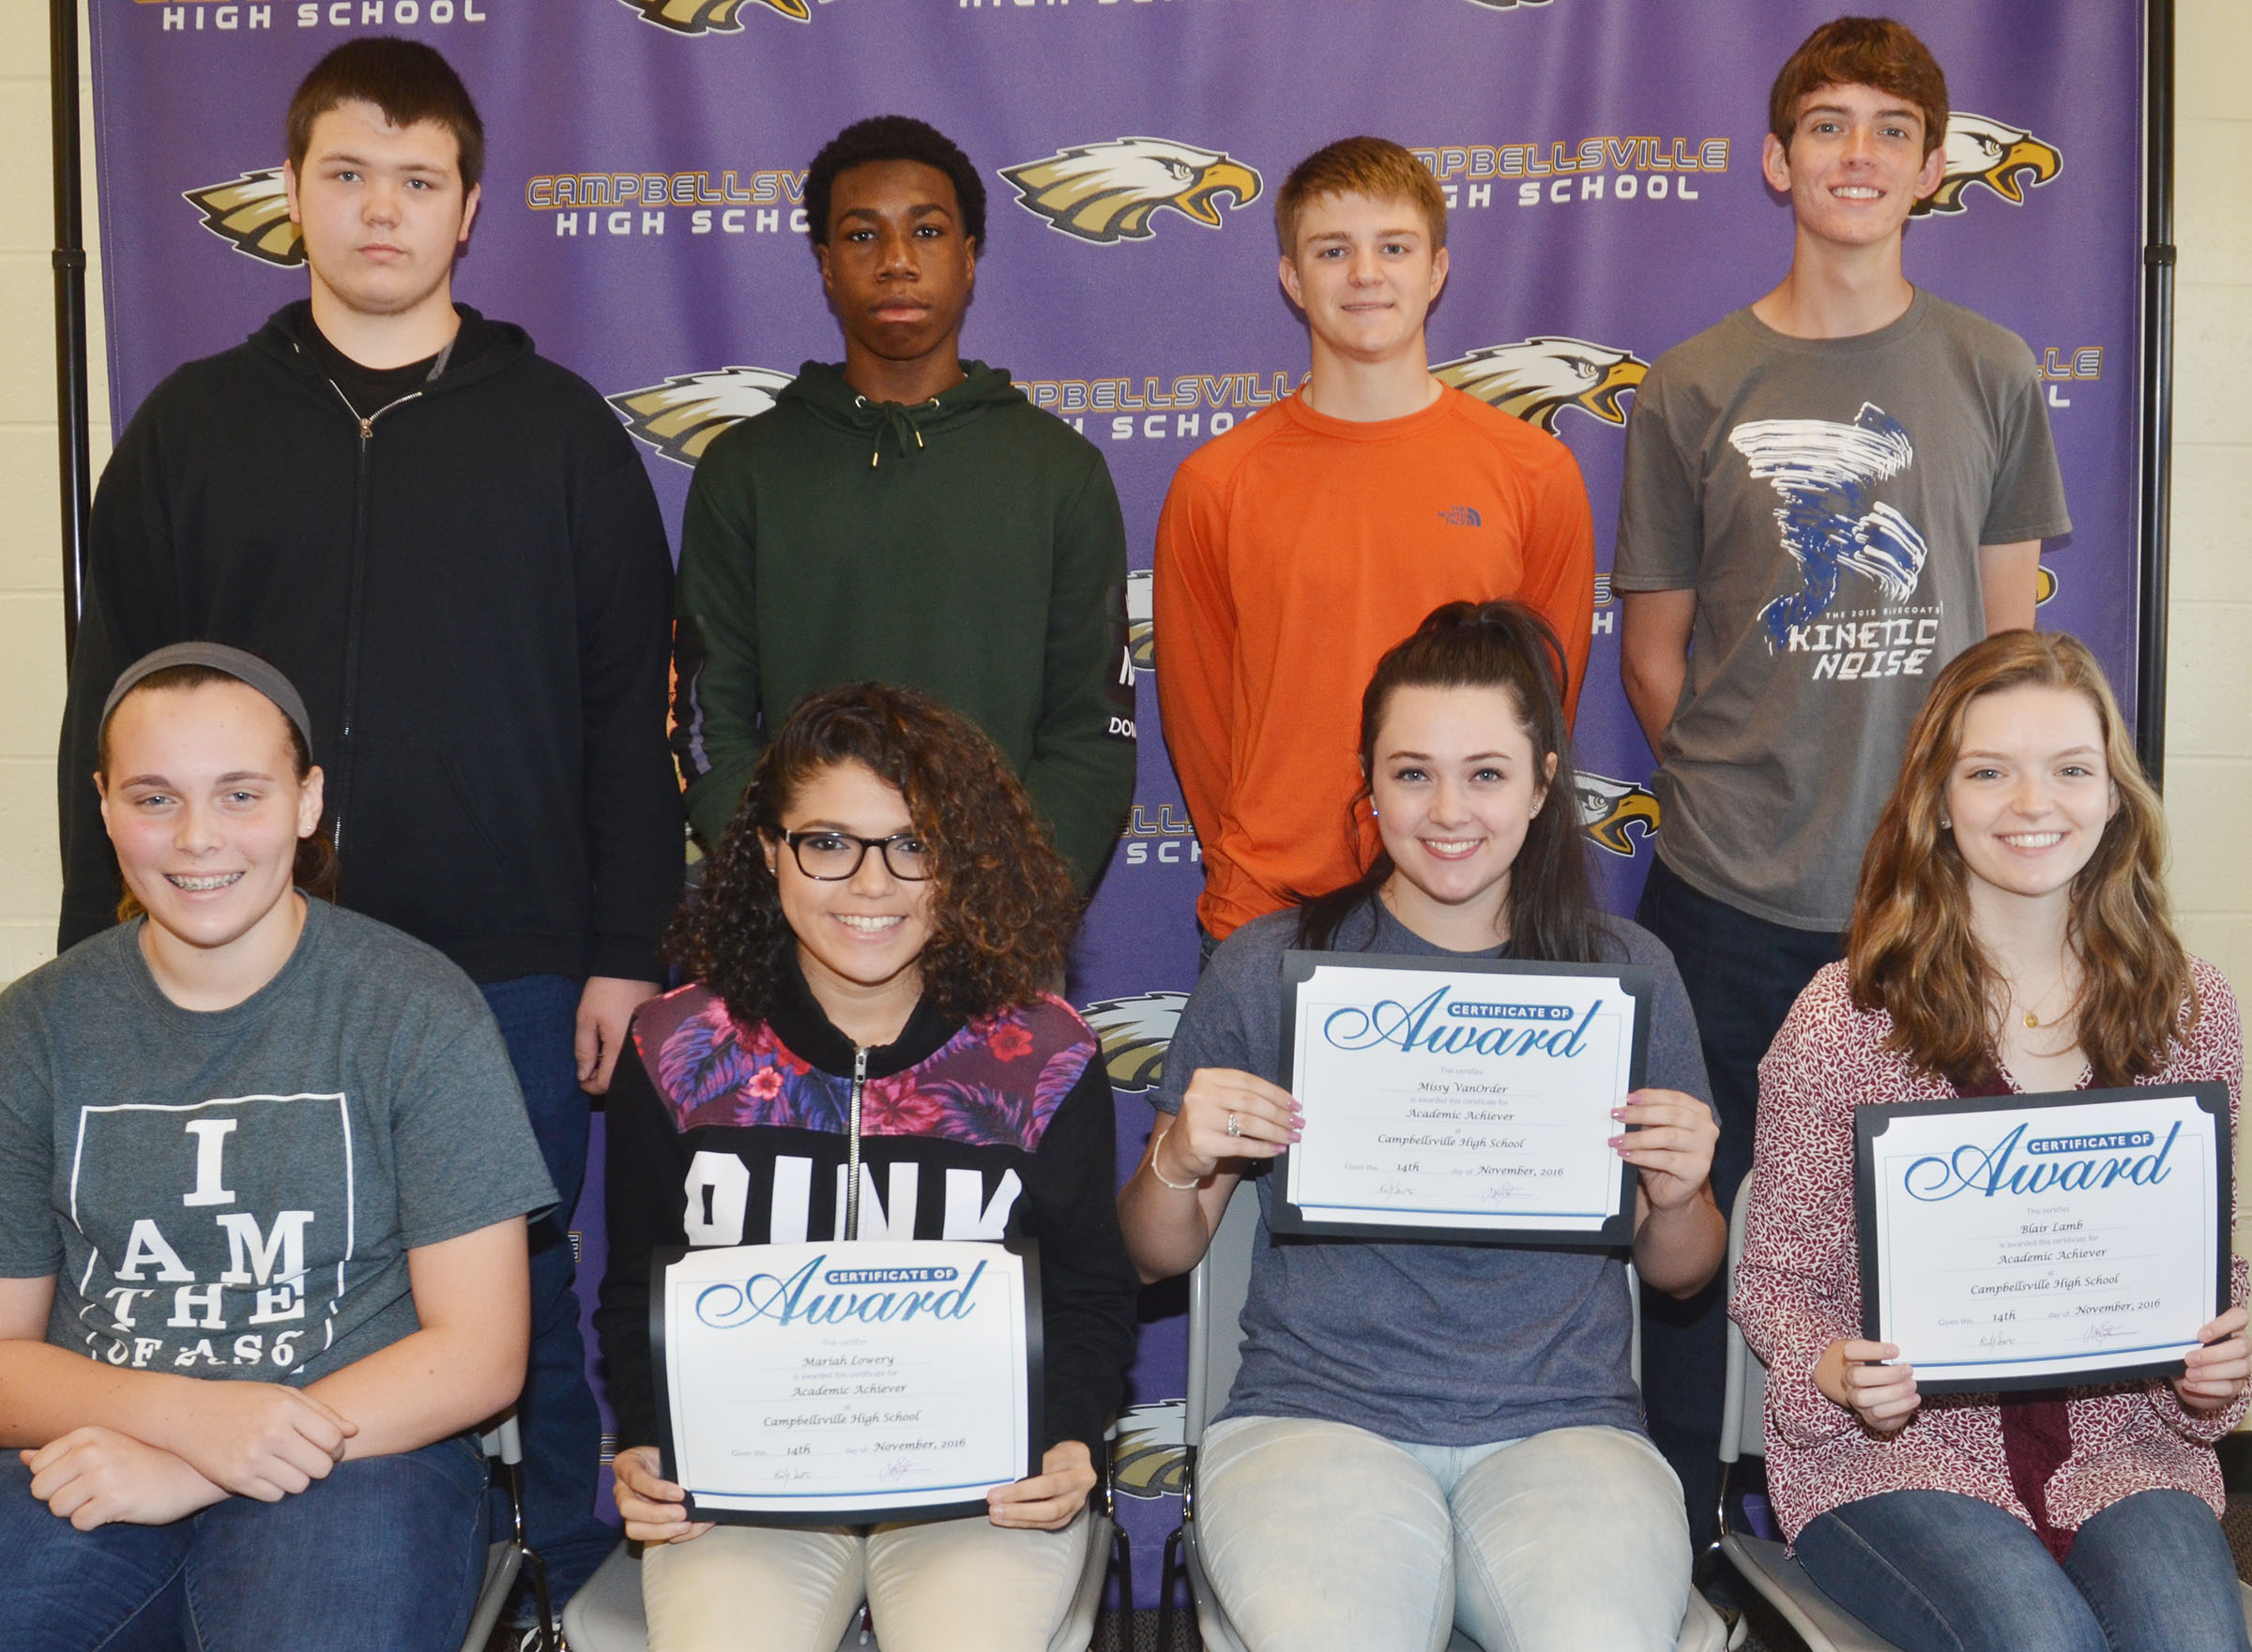 CHS students named Academic Achievers for November are, from left, front, freshman Katelyn Miller, sophomore Mariah Lowery, junior Missy Vanorder and senior Blair Lamb. Back, sophomore Jorden Perkins, freshman Malachi Corley, junior Alex Doss and senior Murphy Lamb.